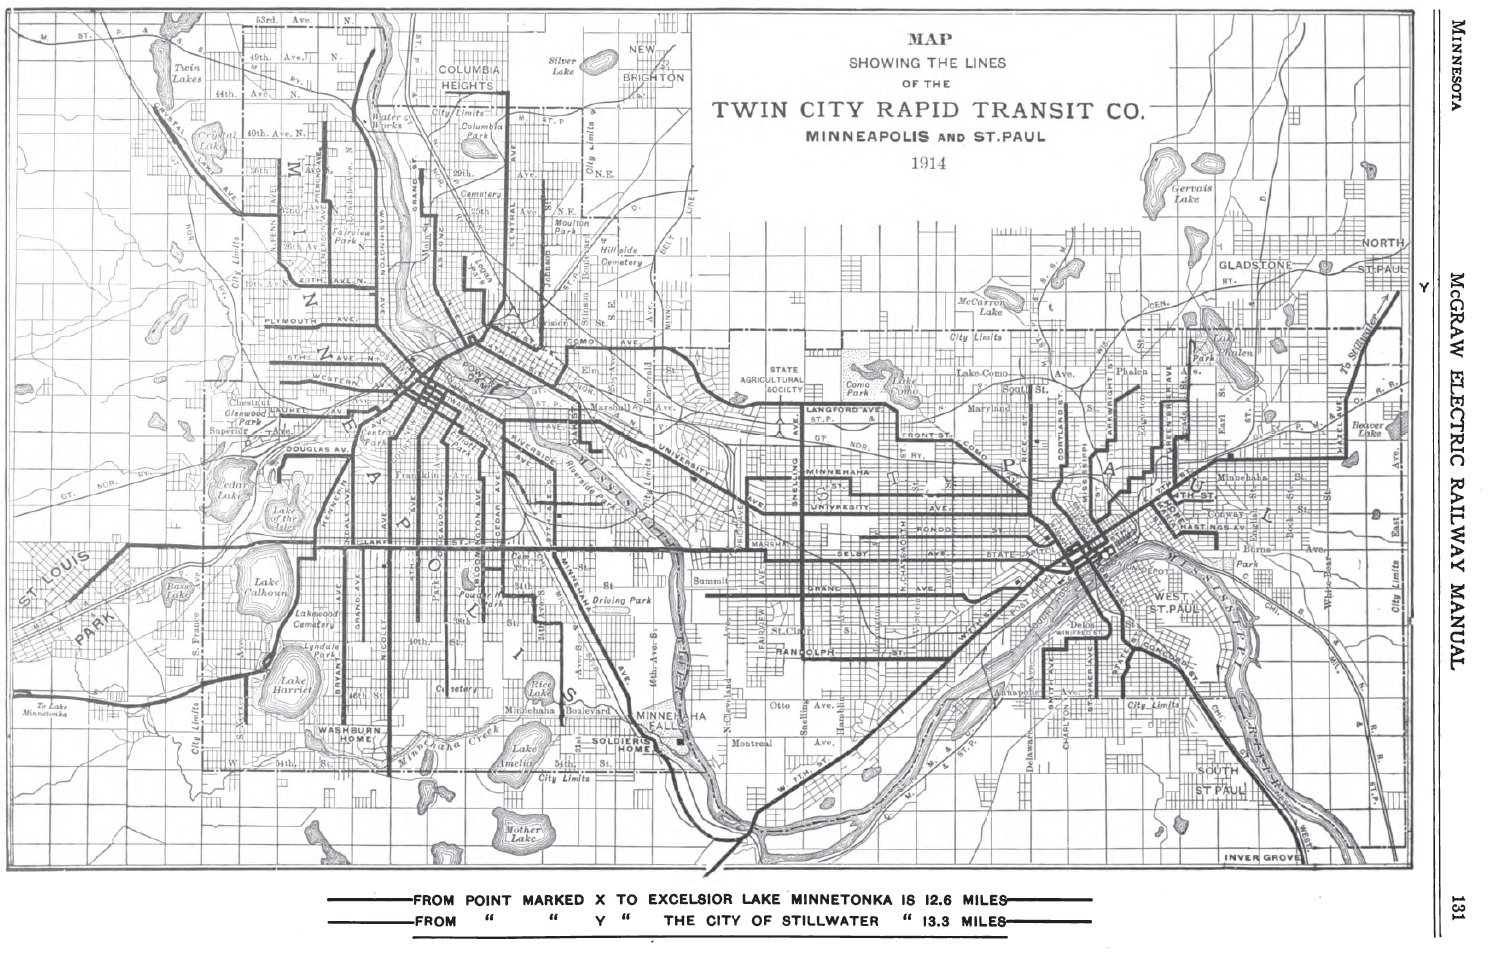 wiki List of transit routes in Minneapolis St. Paul